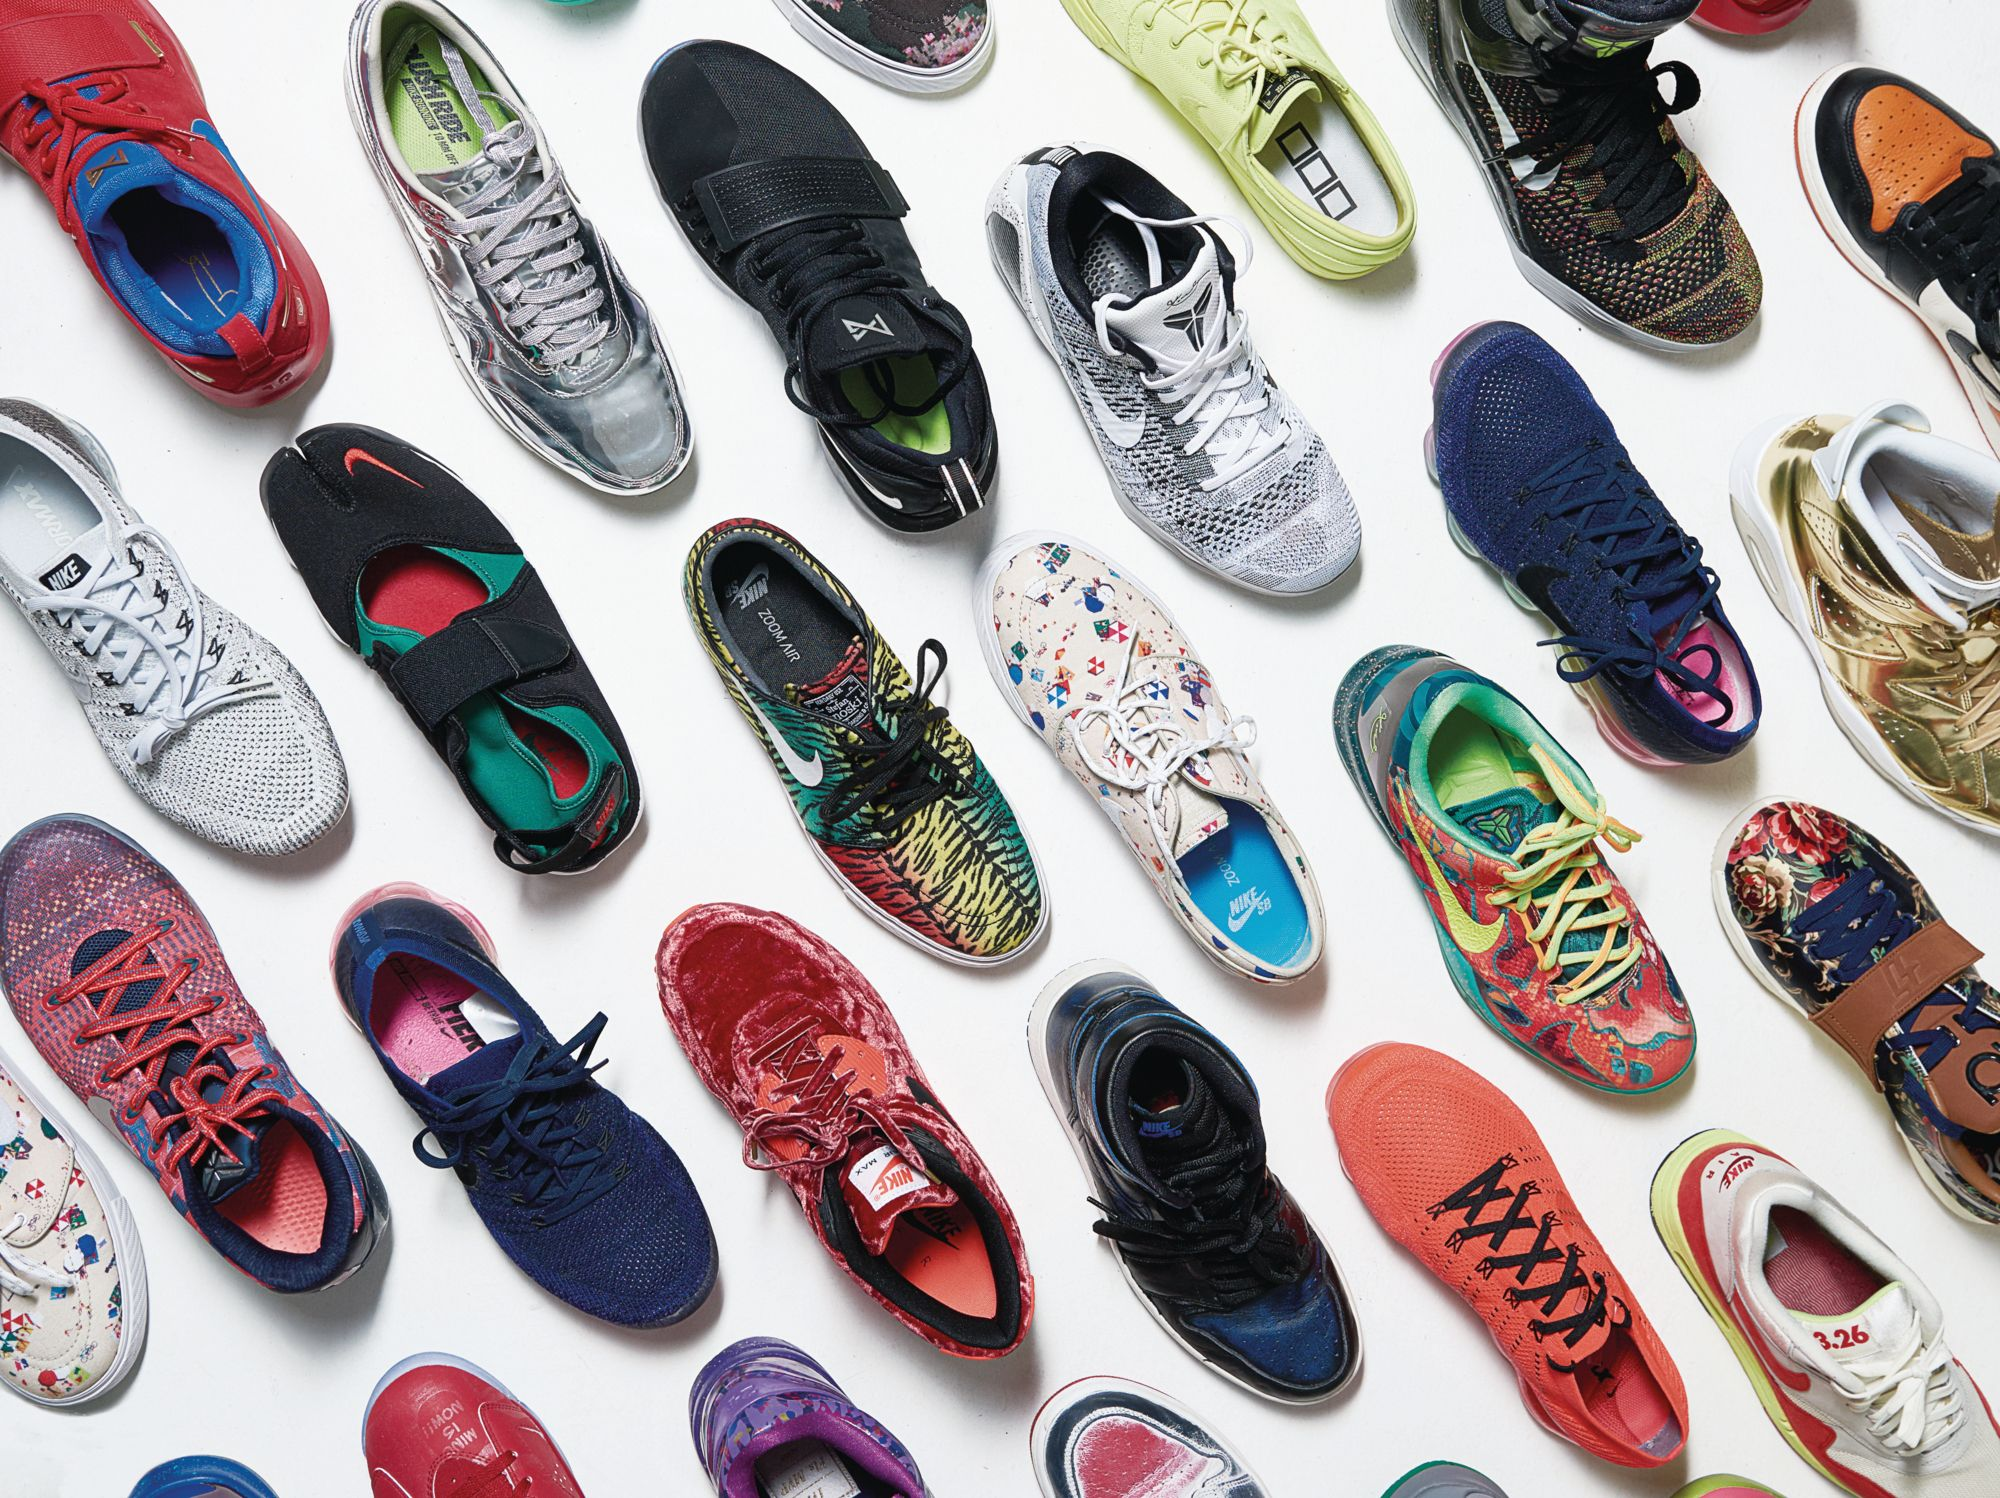 Why Sneaker Collecting is No Longer Just A Niche Hobby But A Form of Investment